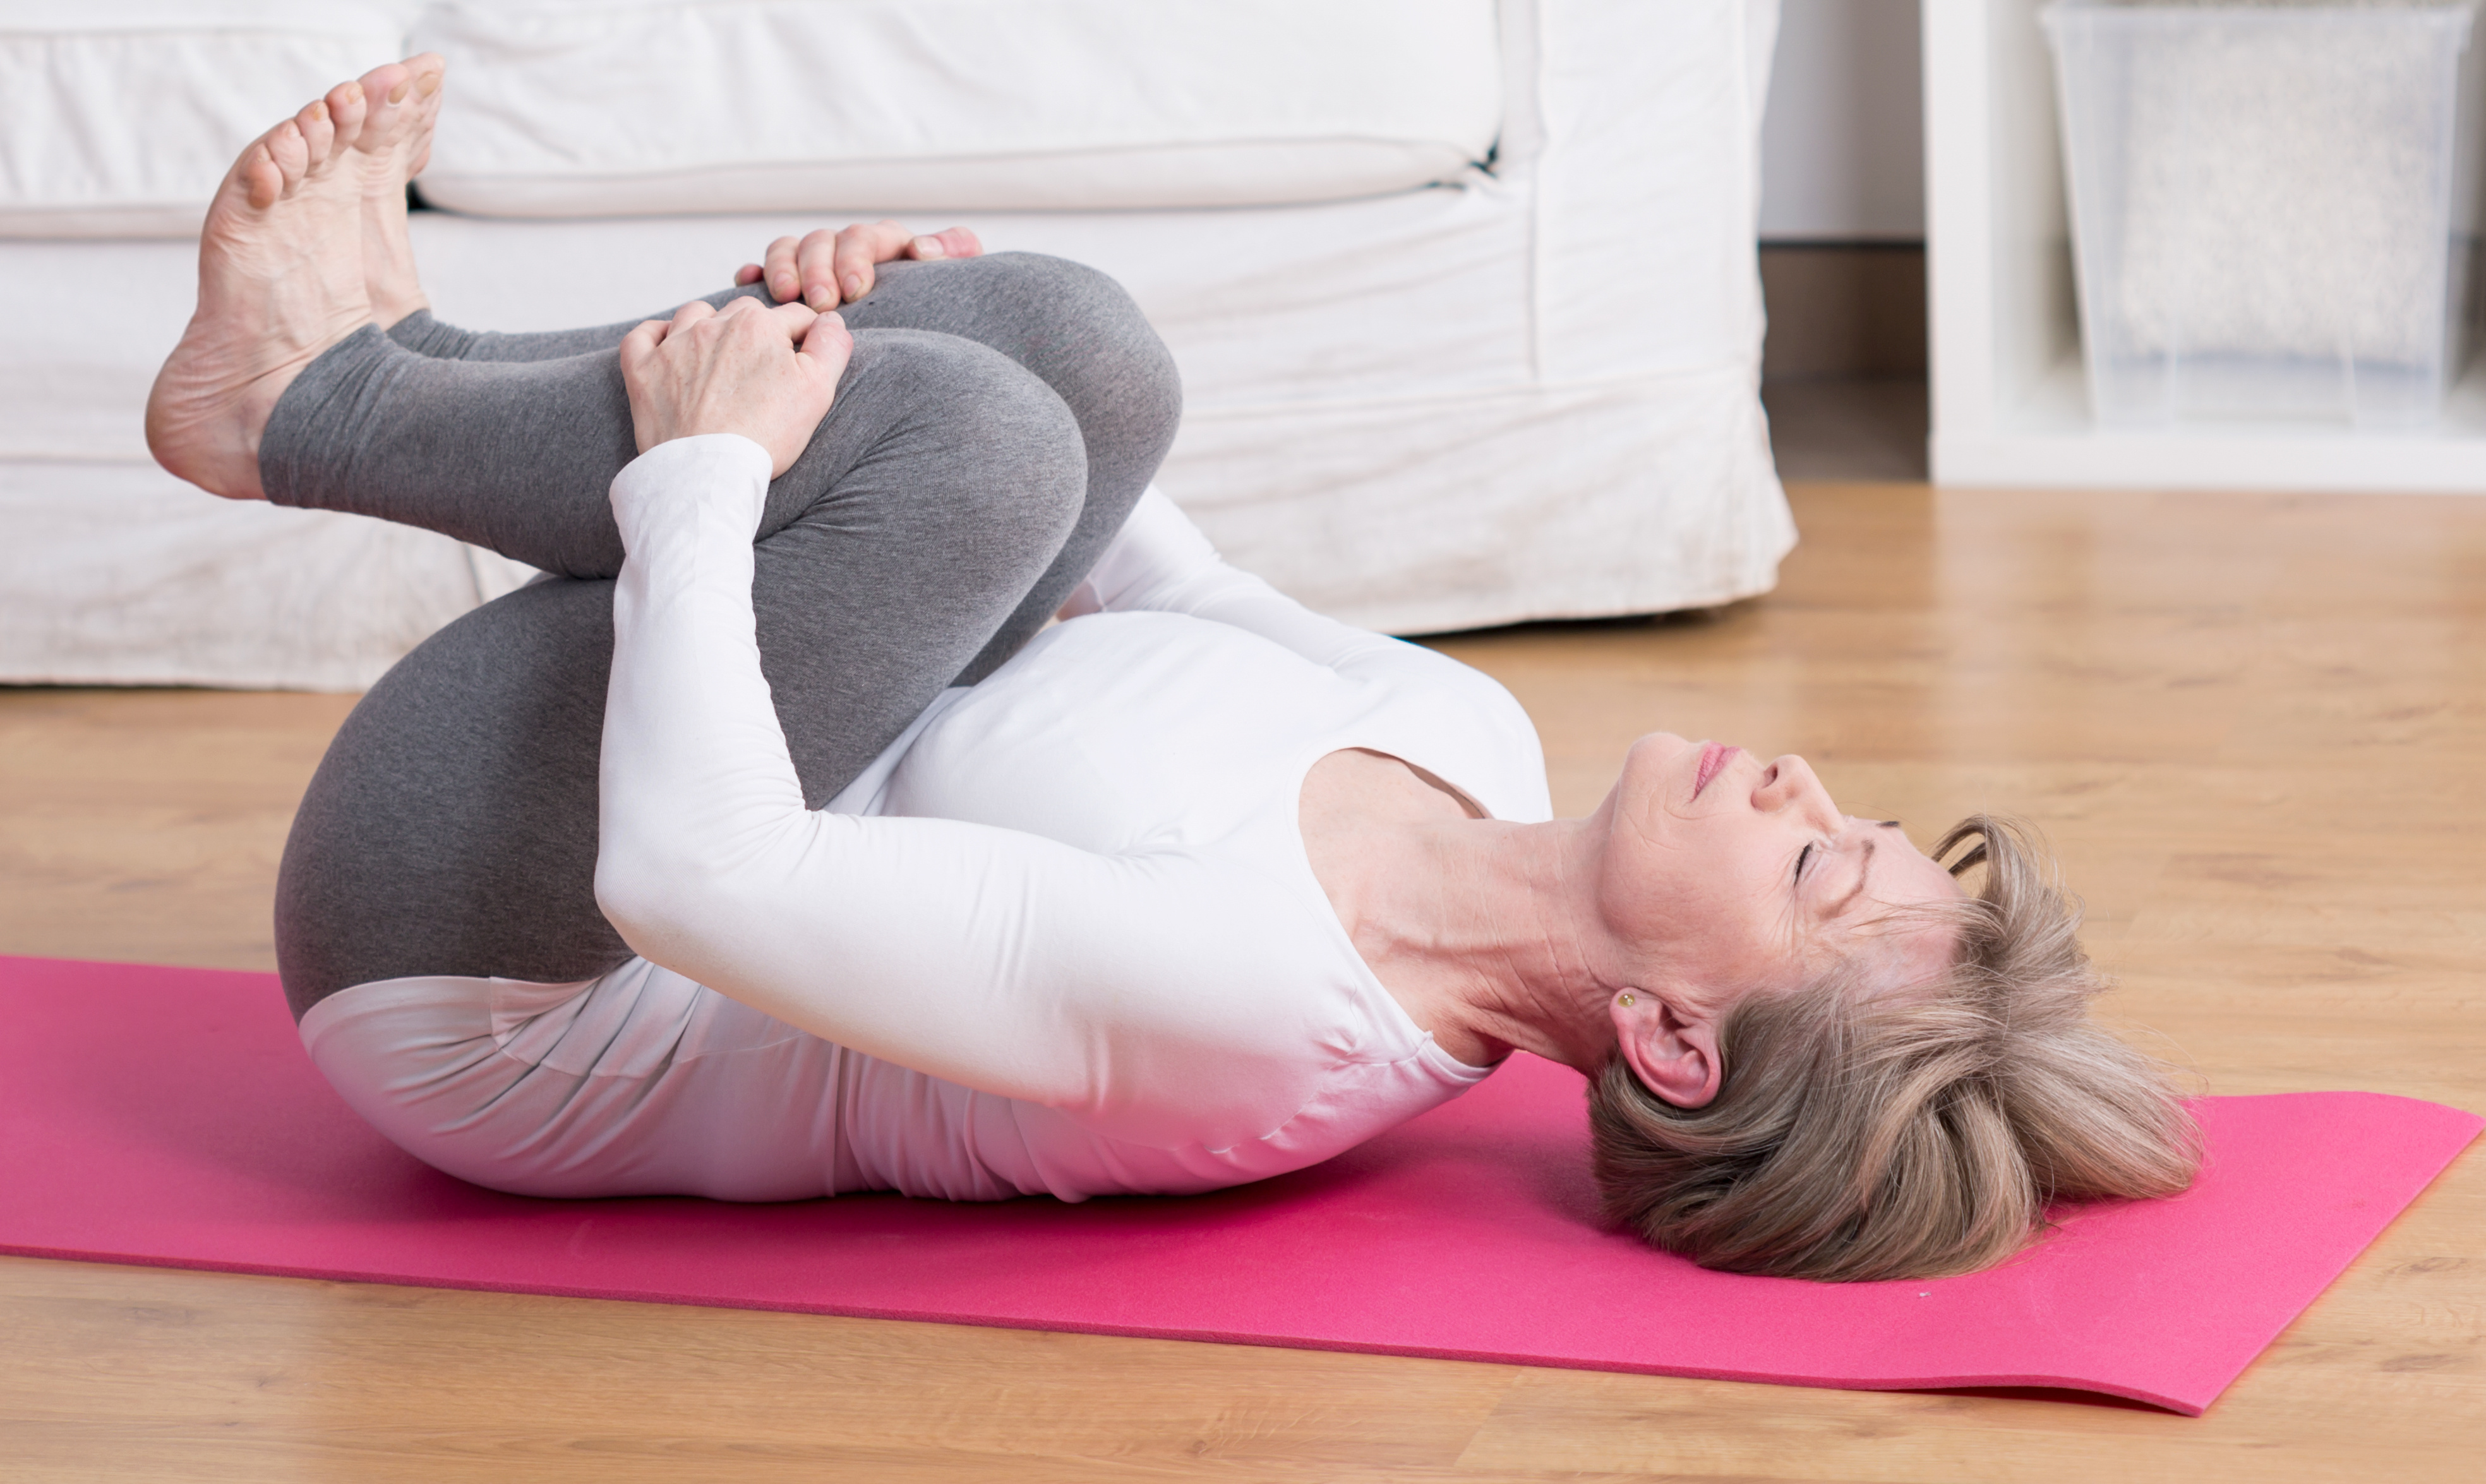 5 exercises for lower back pain